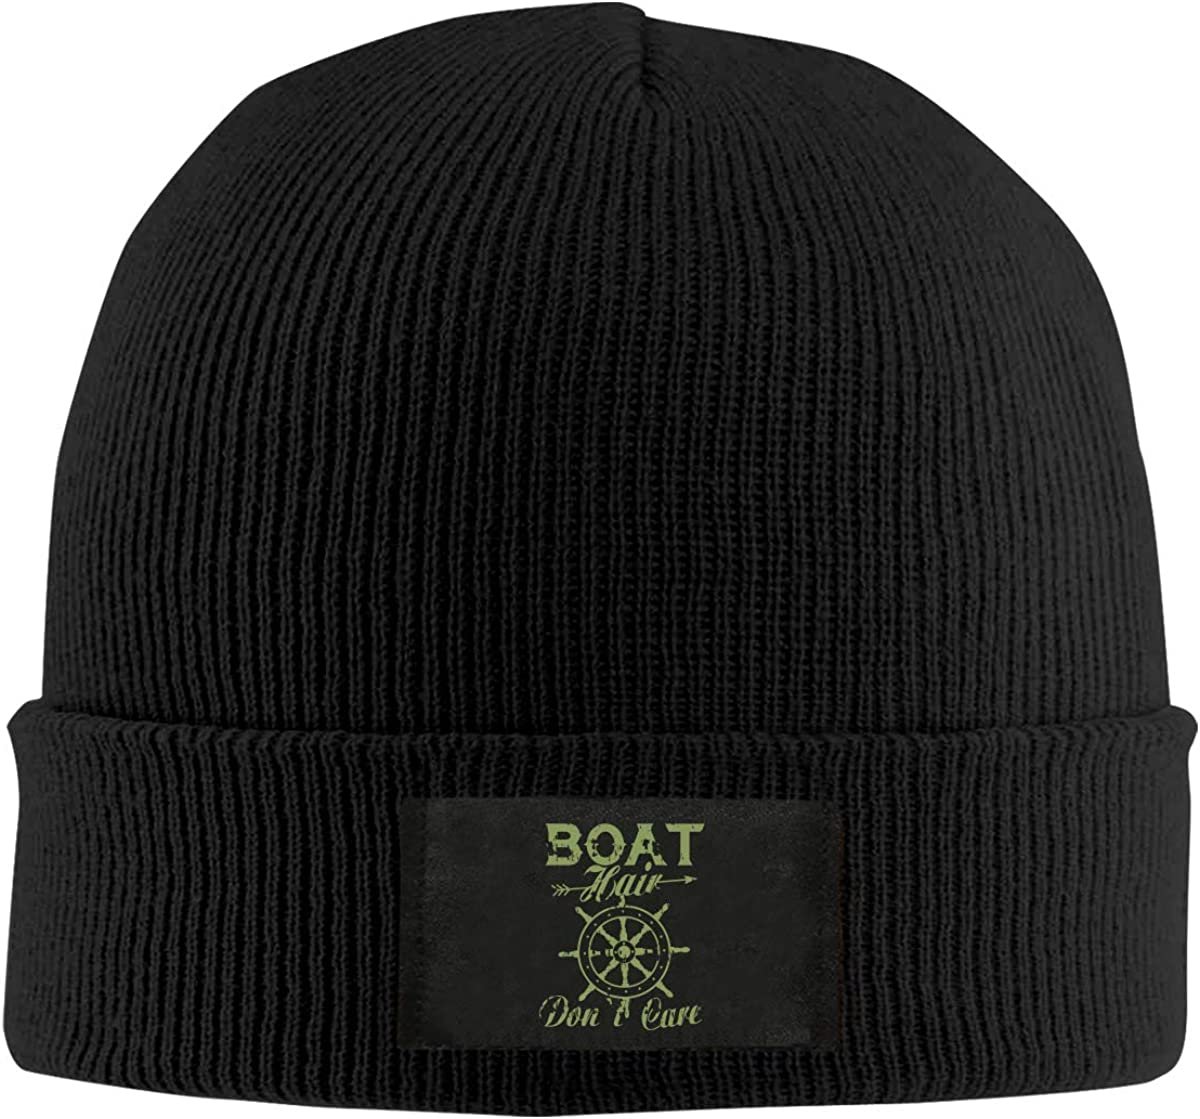 LRHUI Boat Hair Dont Care` Winter Knitted Hat Warm Wool Skull Beanie Cap